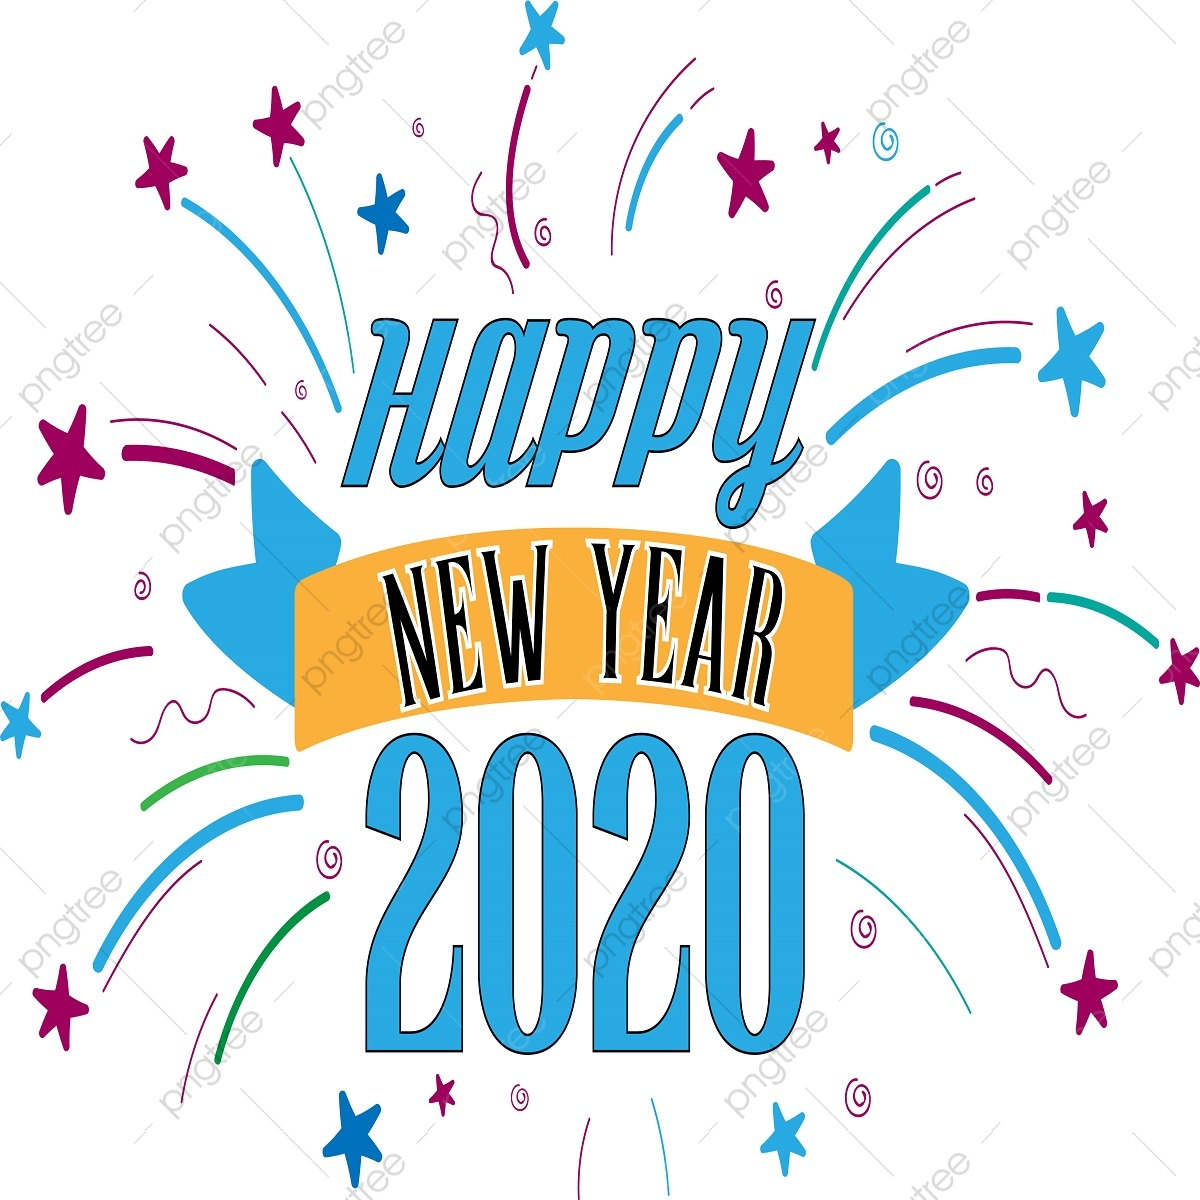 2018 clipart happy new years, 2018 happy new years Transparent FREE for  download on WebStockReview 2020